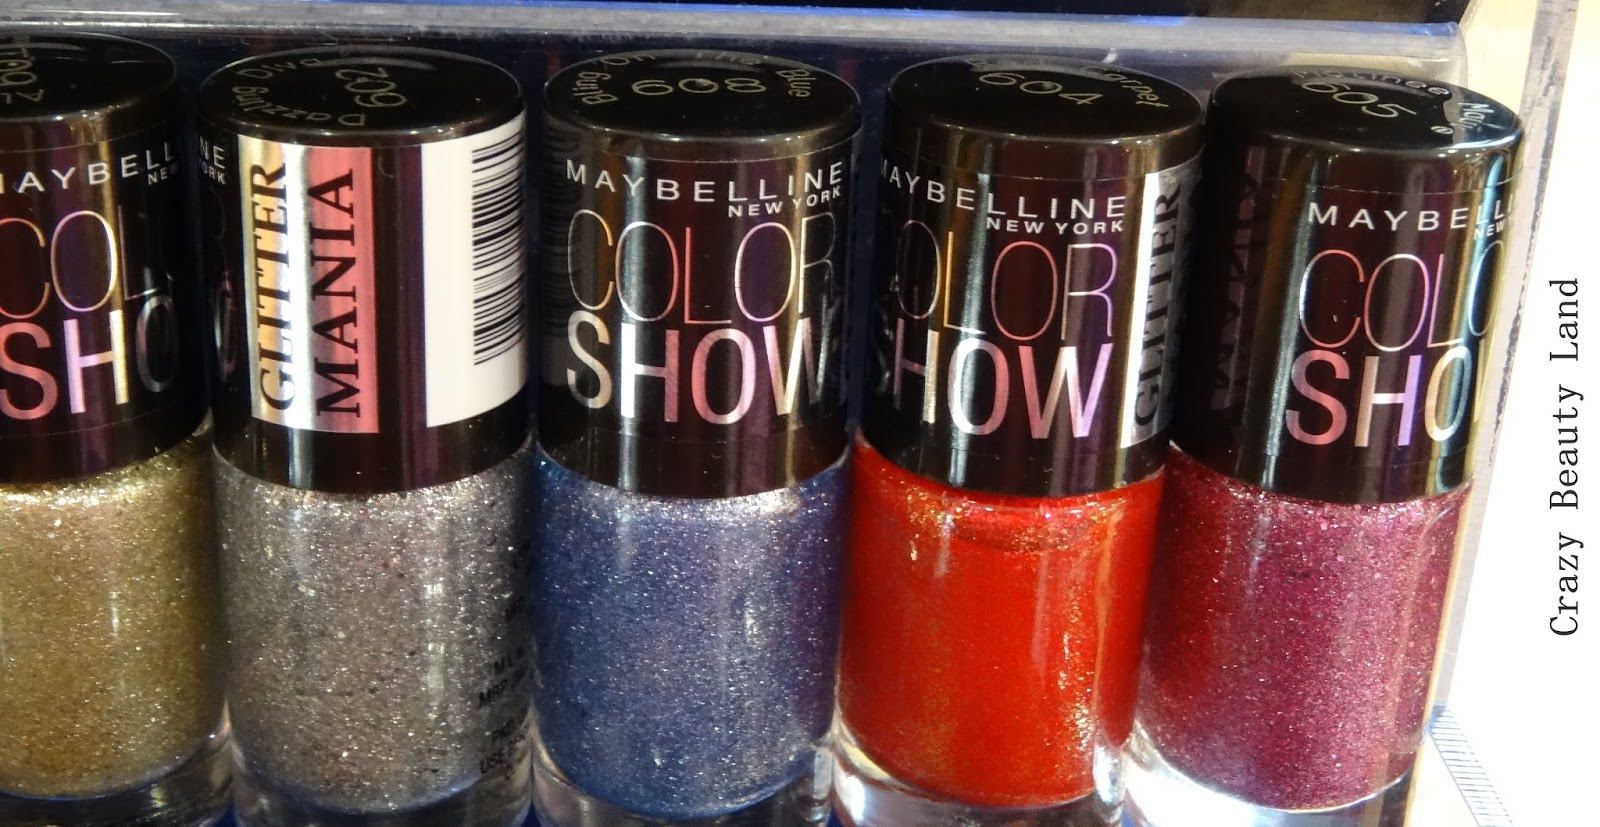 Maybelline Color Show Glitter Mania All Shades in India